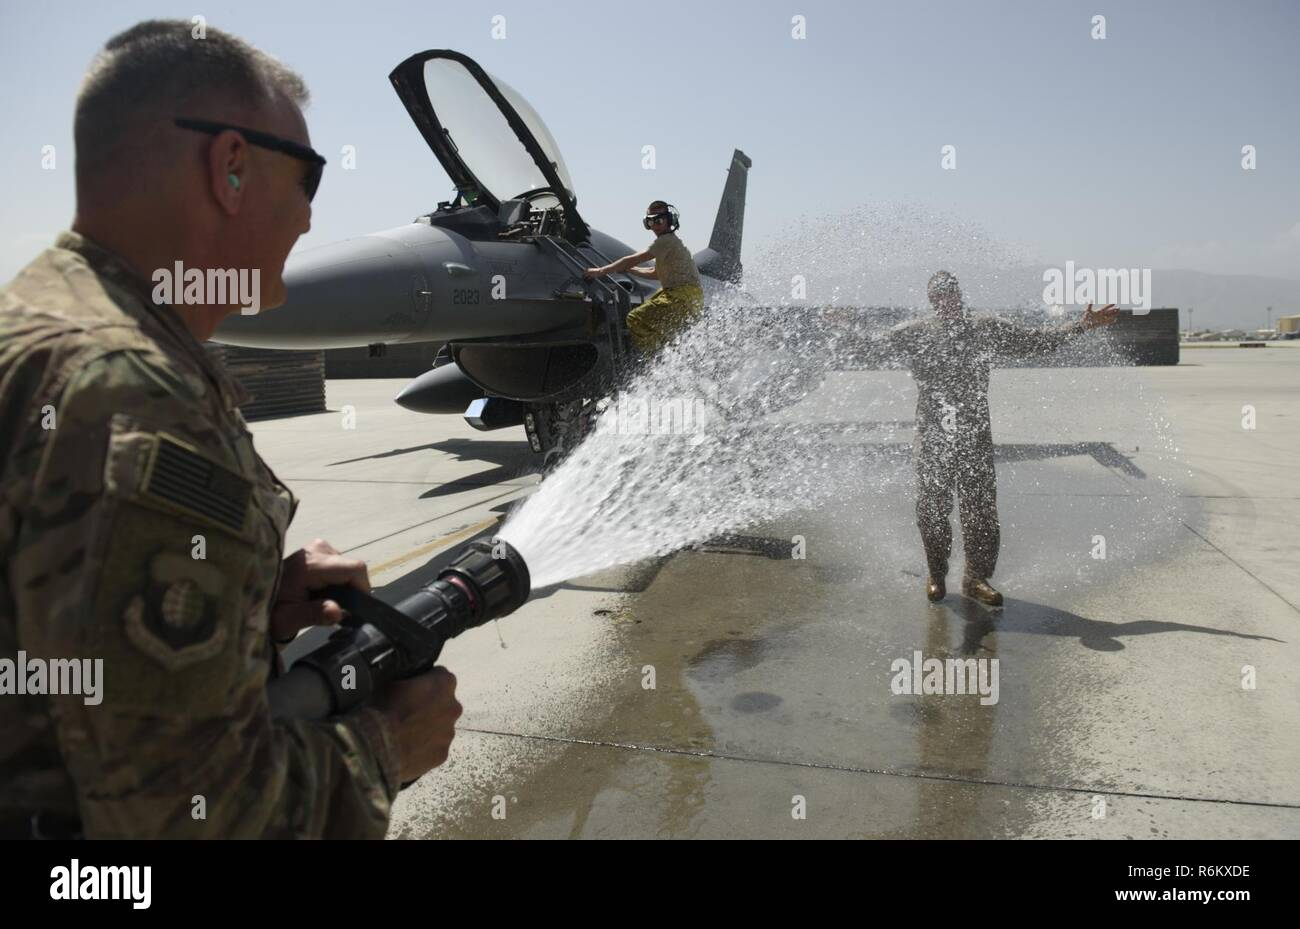 Chief Master Sgt. Peter Speen, command chief of the 455th Air Expeditionary Wing, hoses down Brig. Gen. Jim Sears at Bagram Airfield, Afghanistan, May 22, 2017. Sears, commander of the 455th AEW, conducted his fini flight out of Bagram Airfield. The fini flight is a time-honored military aviation tradition marking the last flight of a commander's tour. Stock Photo